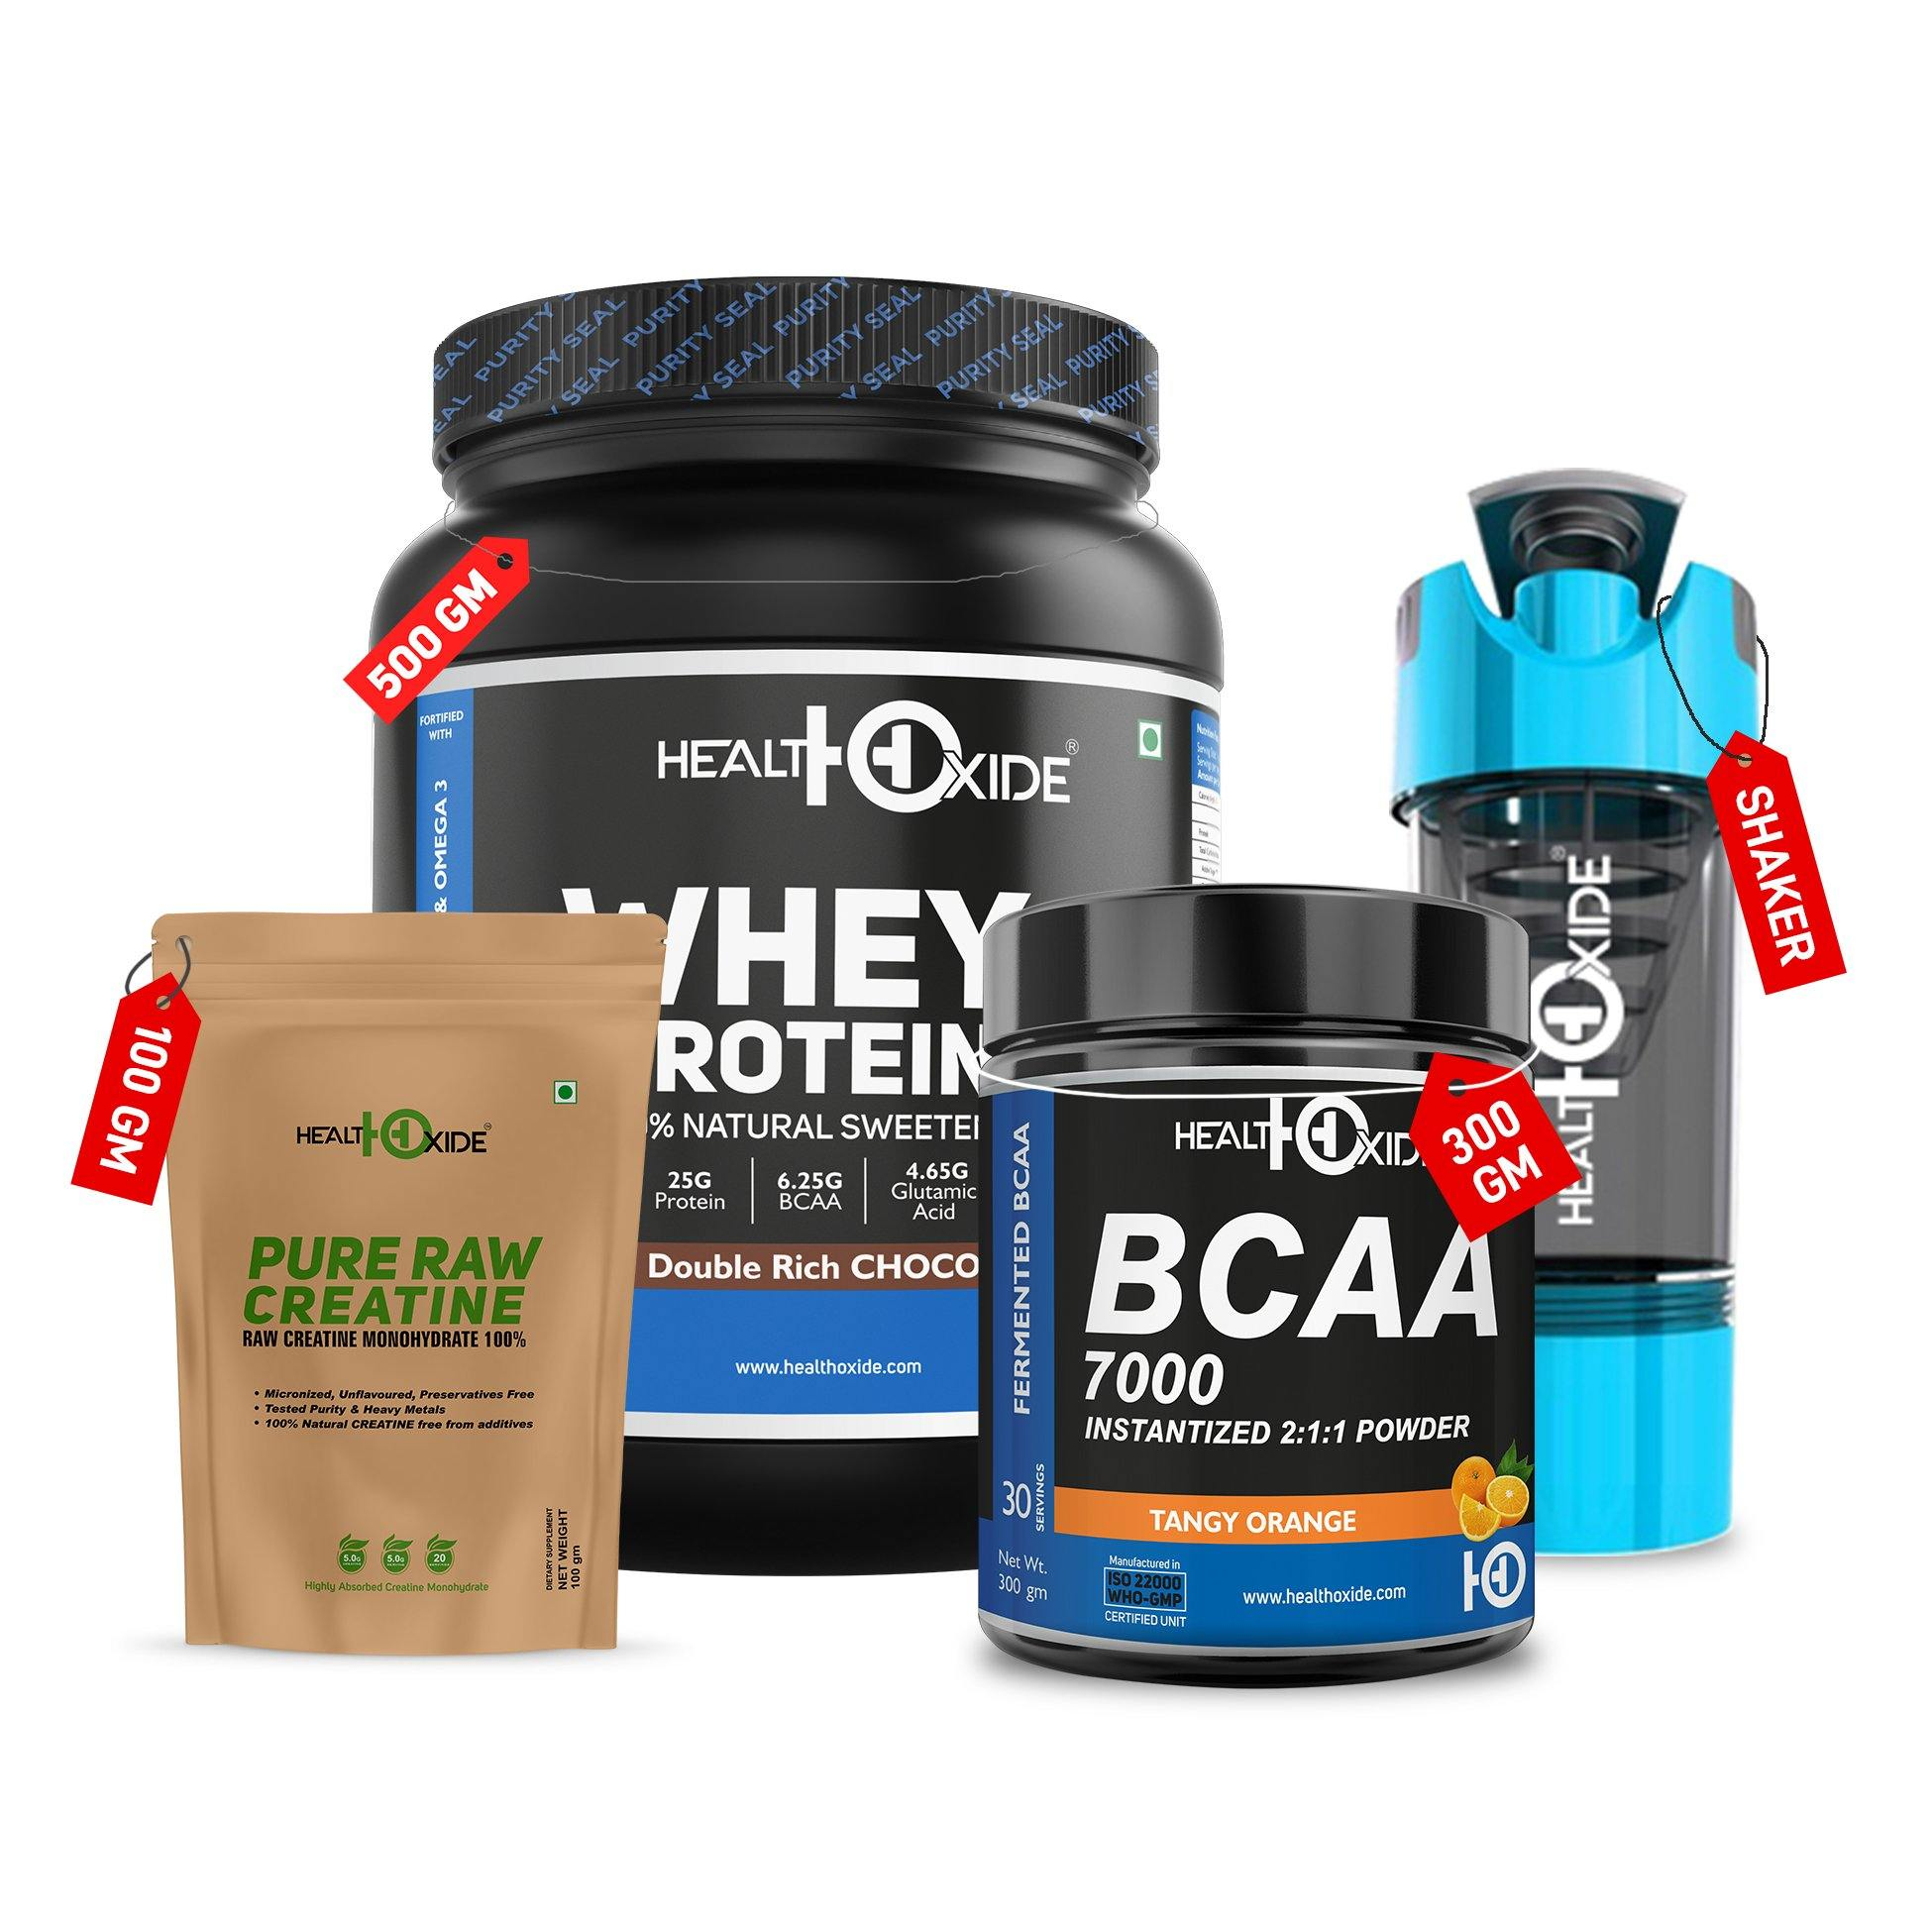 Bodybuilding Combo -Whey Protein + Creatine Unflavored+ BCAA+ Gym Shaker